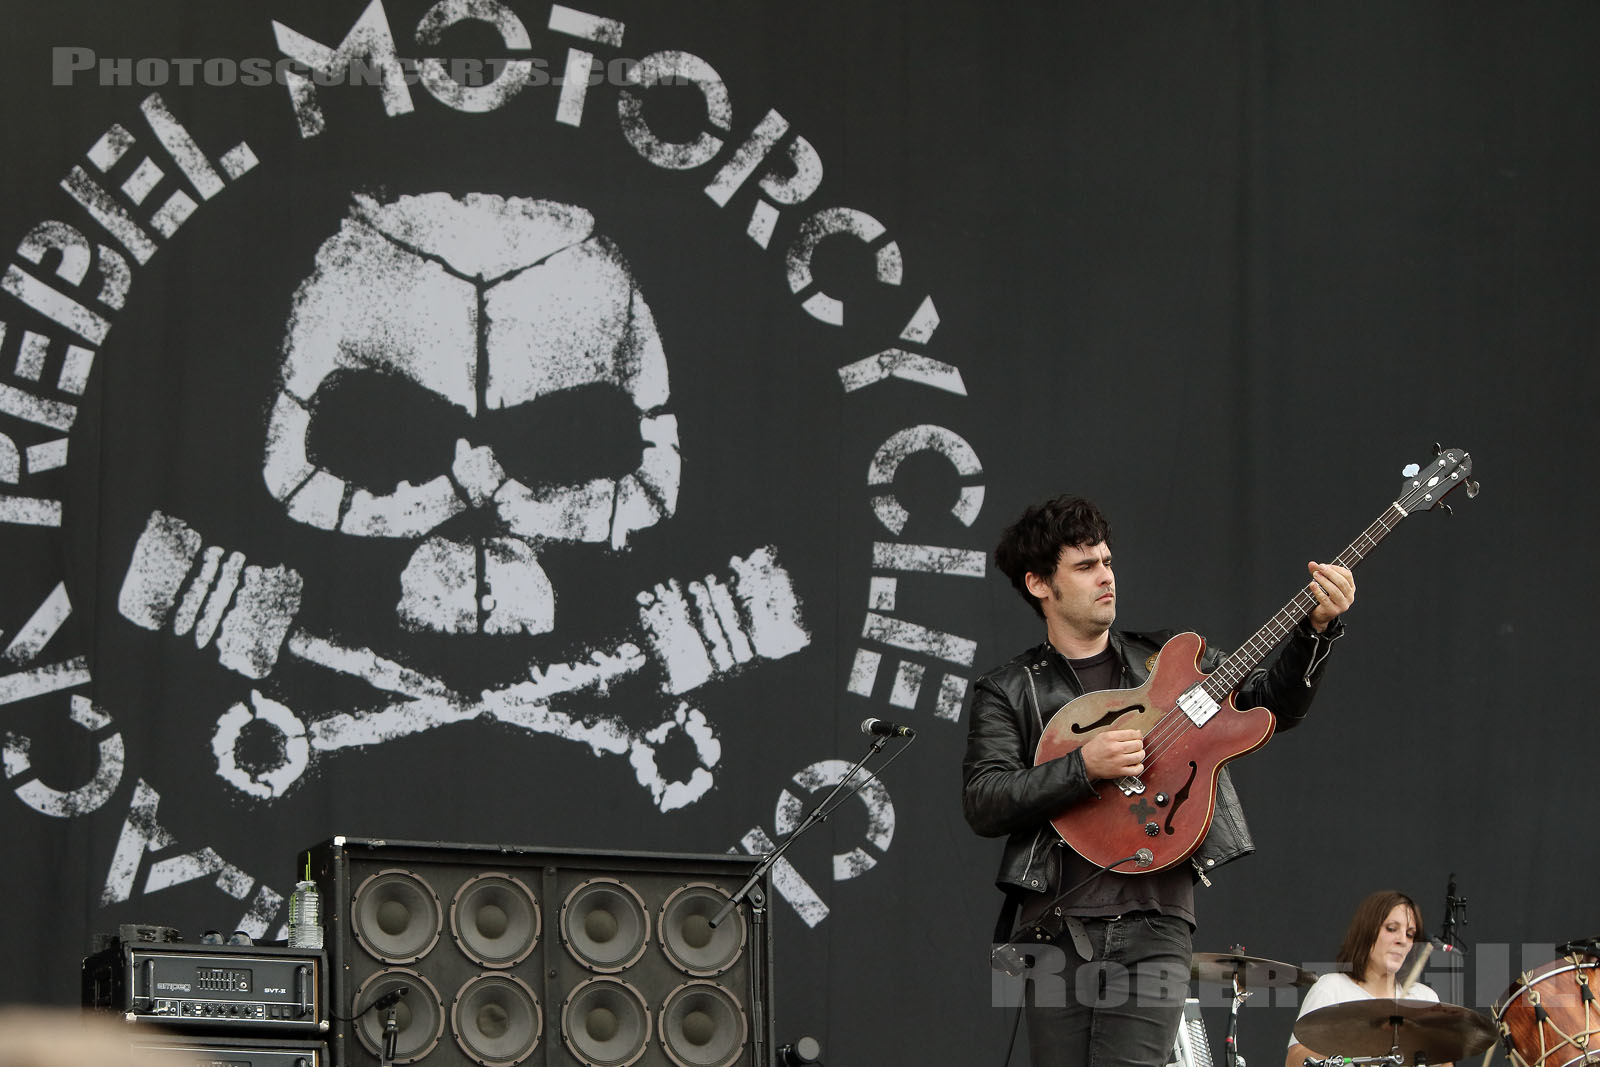 BLACK REBEL MOTORCYCLE CLUB - 2018-07-21 - PARIS - Hippodrome de Longchamp - Main Stage 2